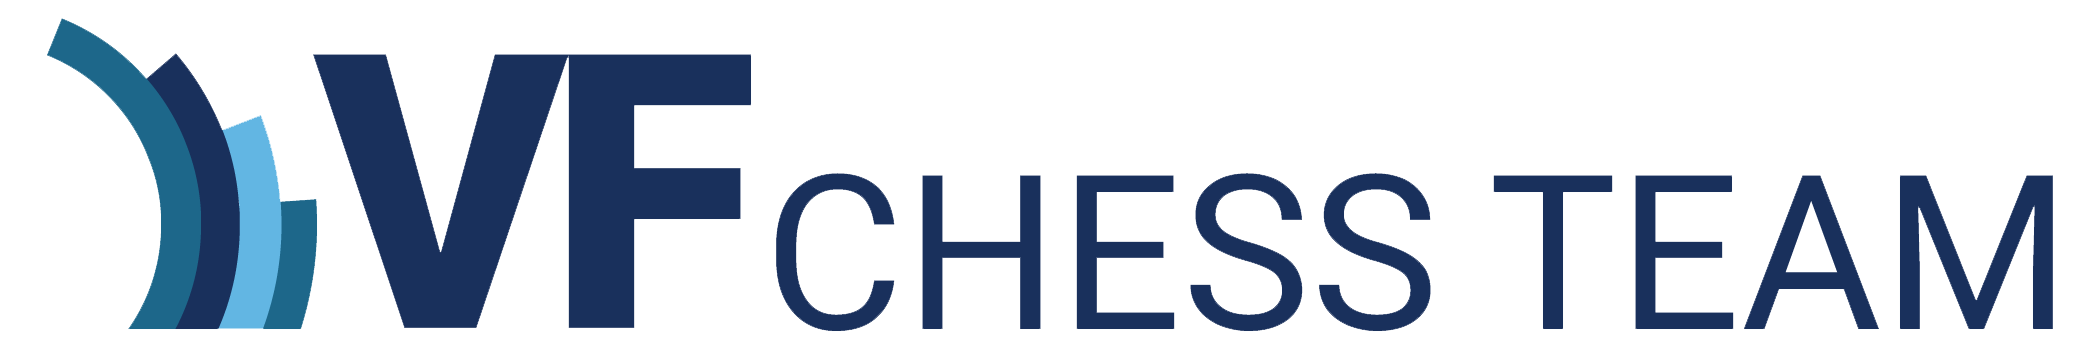 VFChess Team